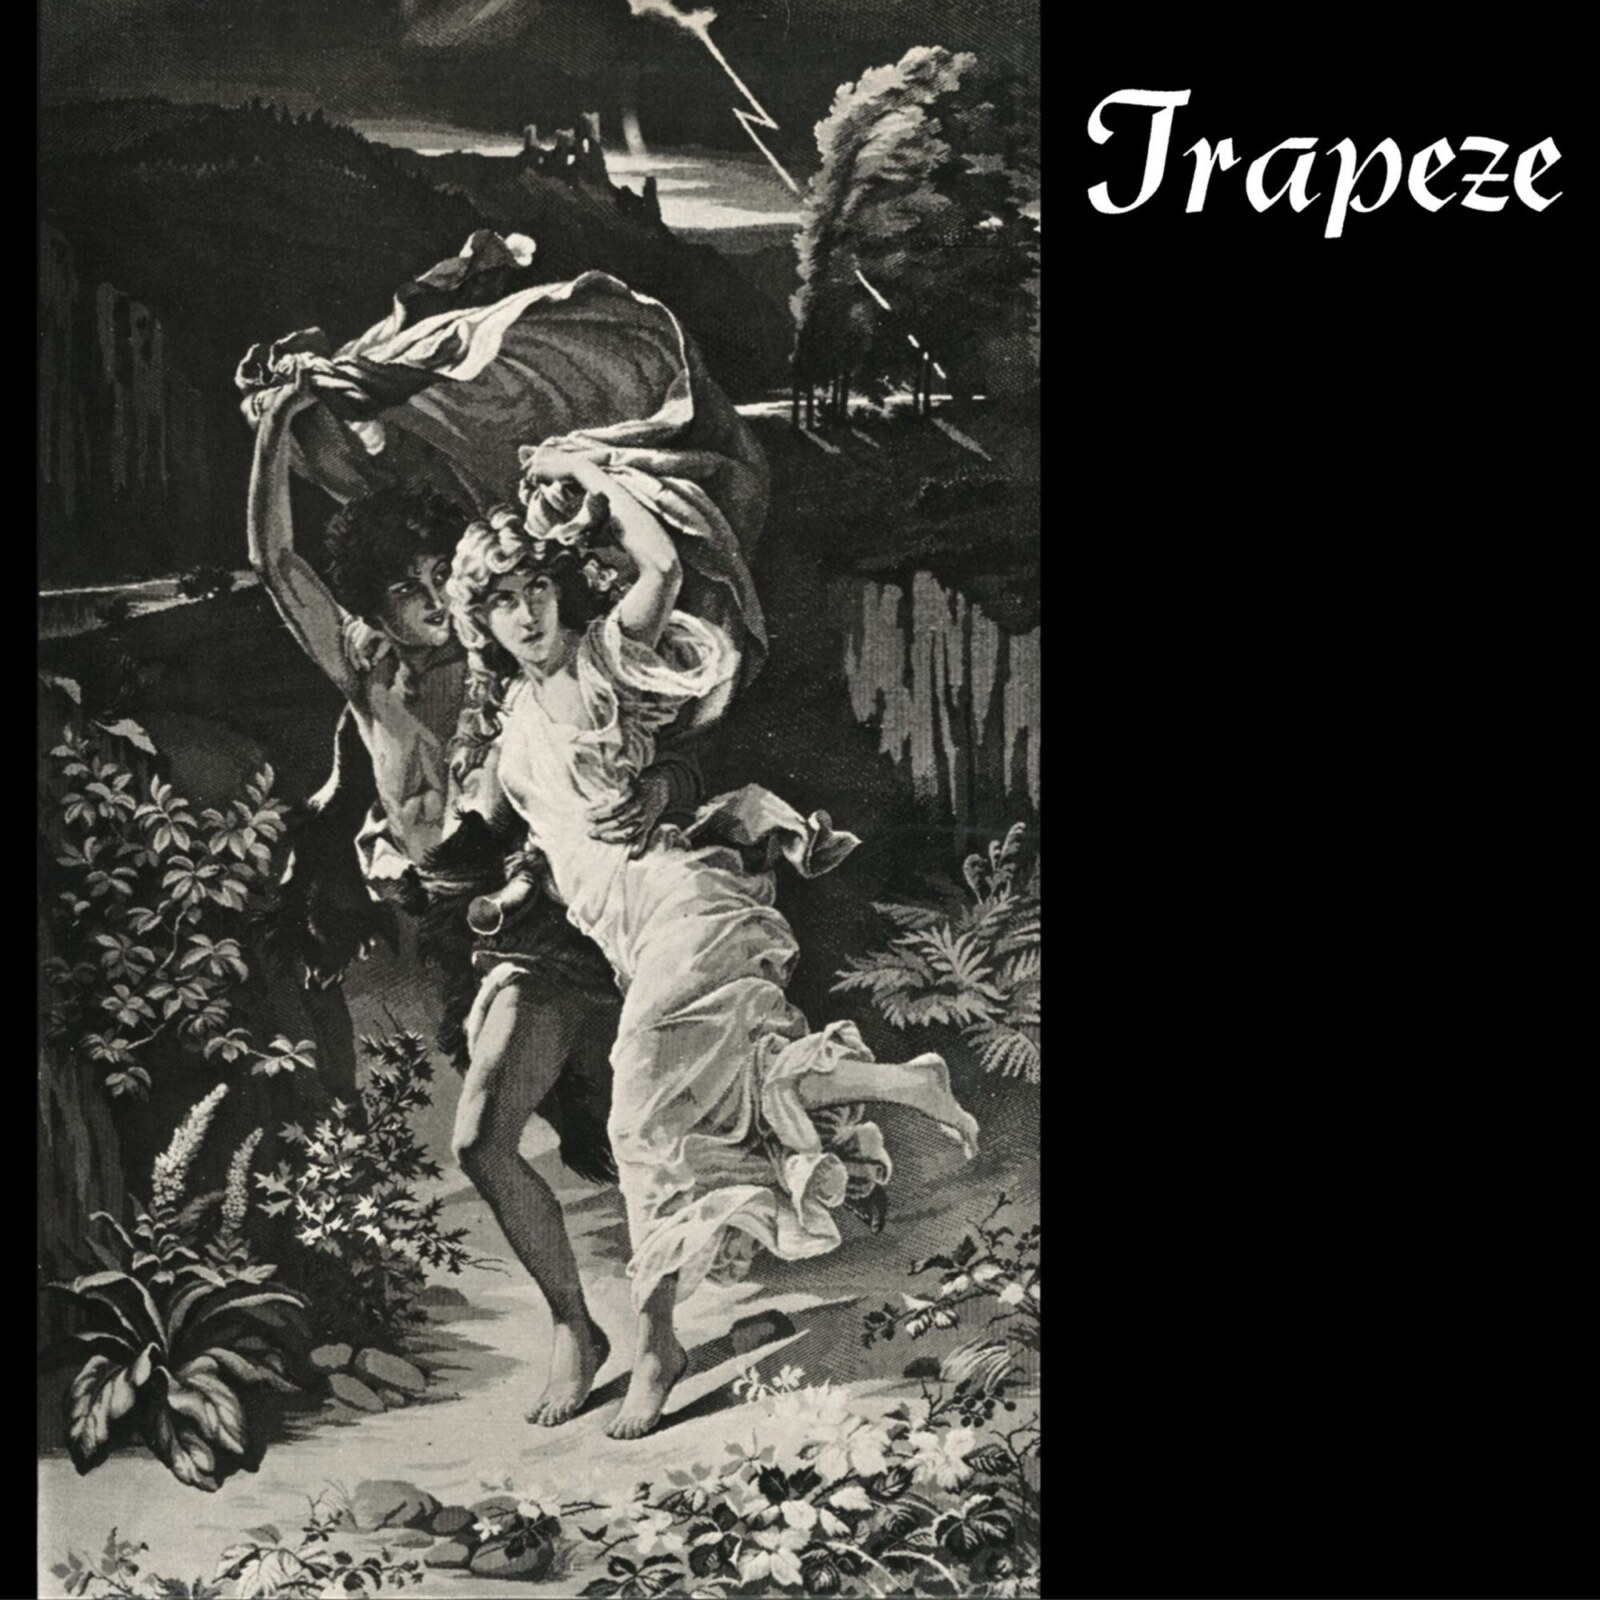 Trapeze -'Trapeze' (1970) - It's Psychedelic Baby Magazine